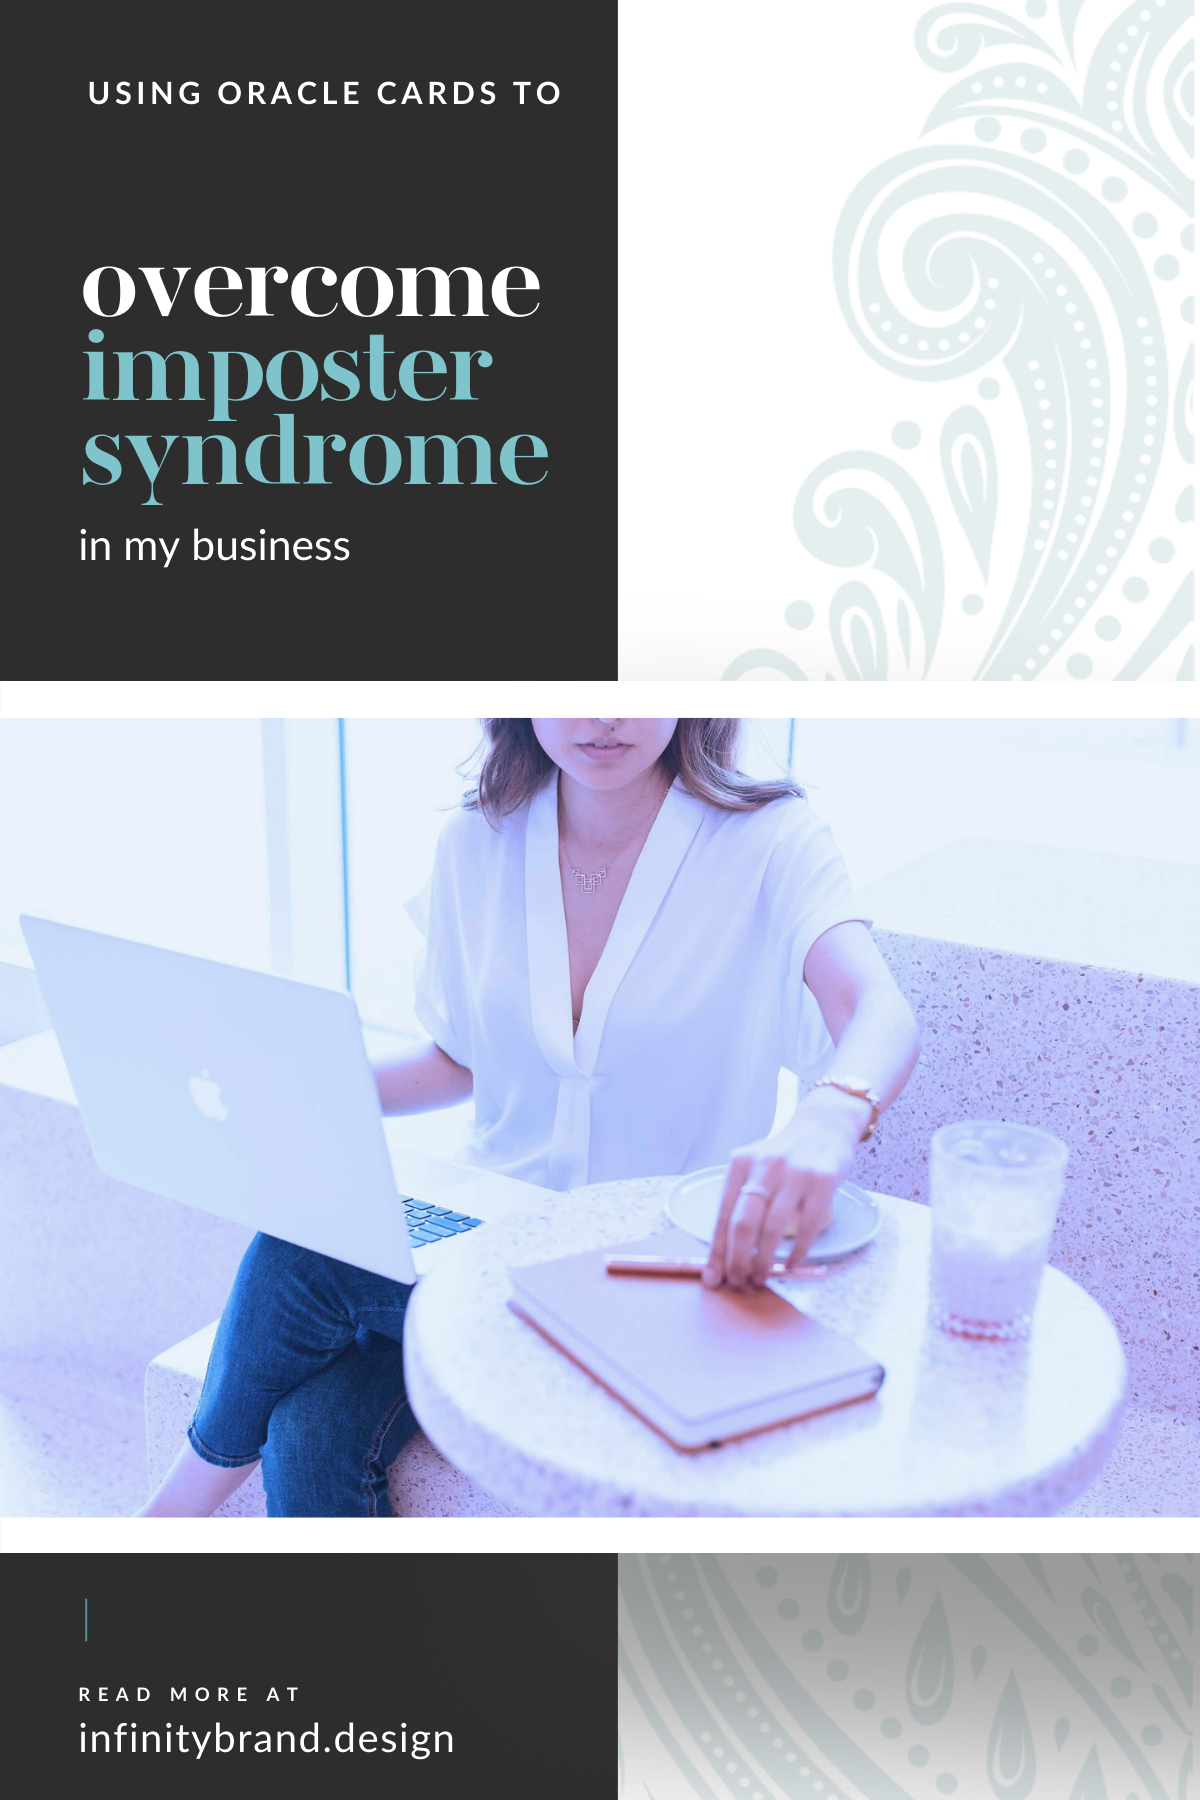 70% of high-achievers, including coaches, suffer from imposter syndrome at some point in their business. Read on to learn about how I use Oracle cards in my business... and how I unknowingly discovered a valuable tool to help overcoming my own battle with imposter syndrome.